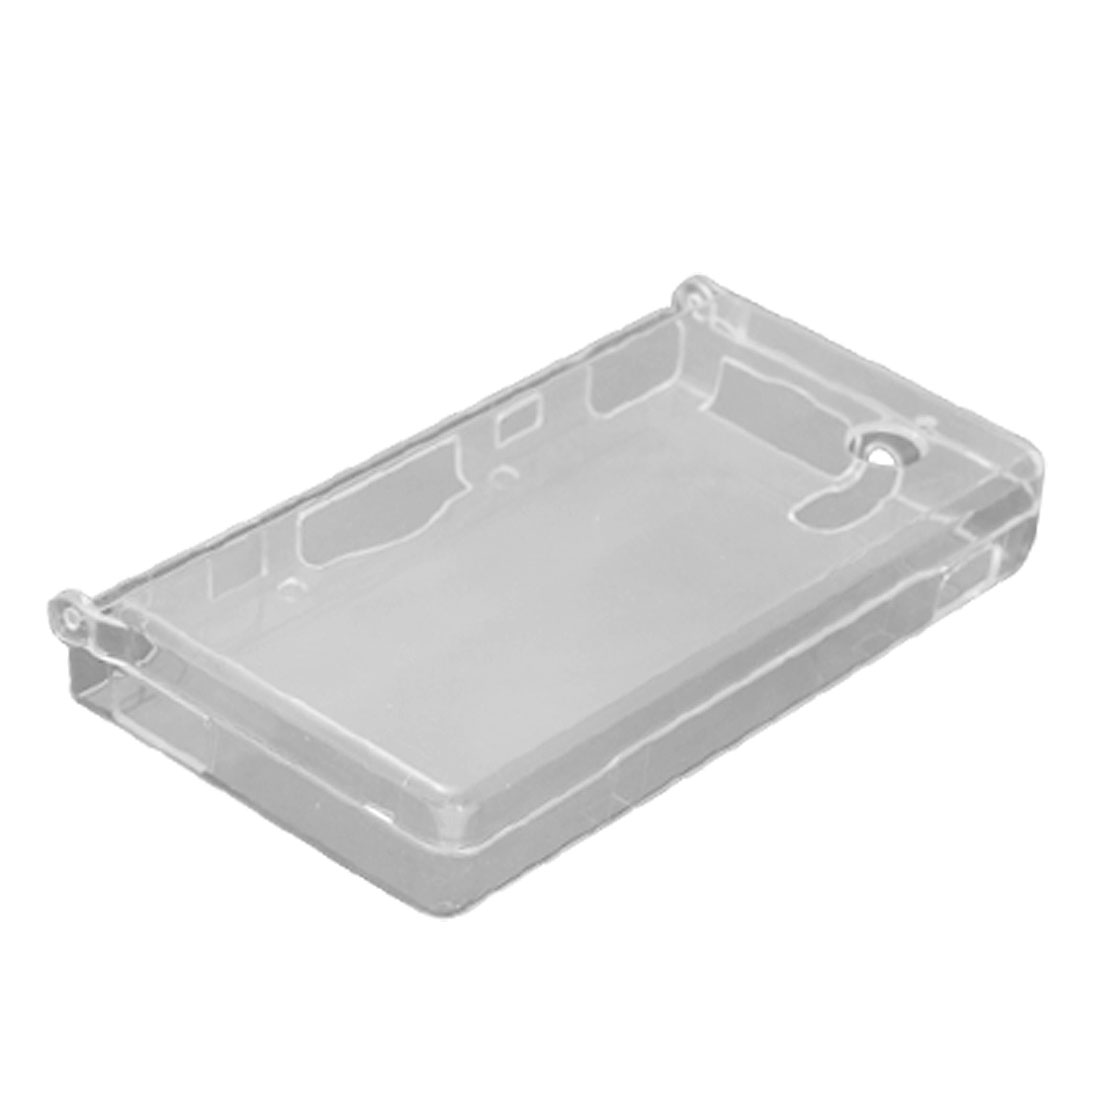 Clear Plastic Protection Case for Nintendo NDSi Console